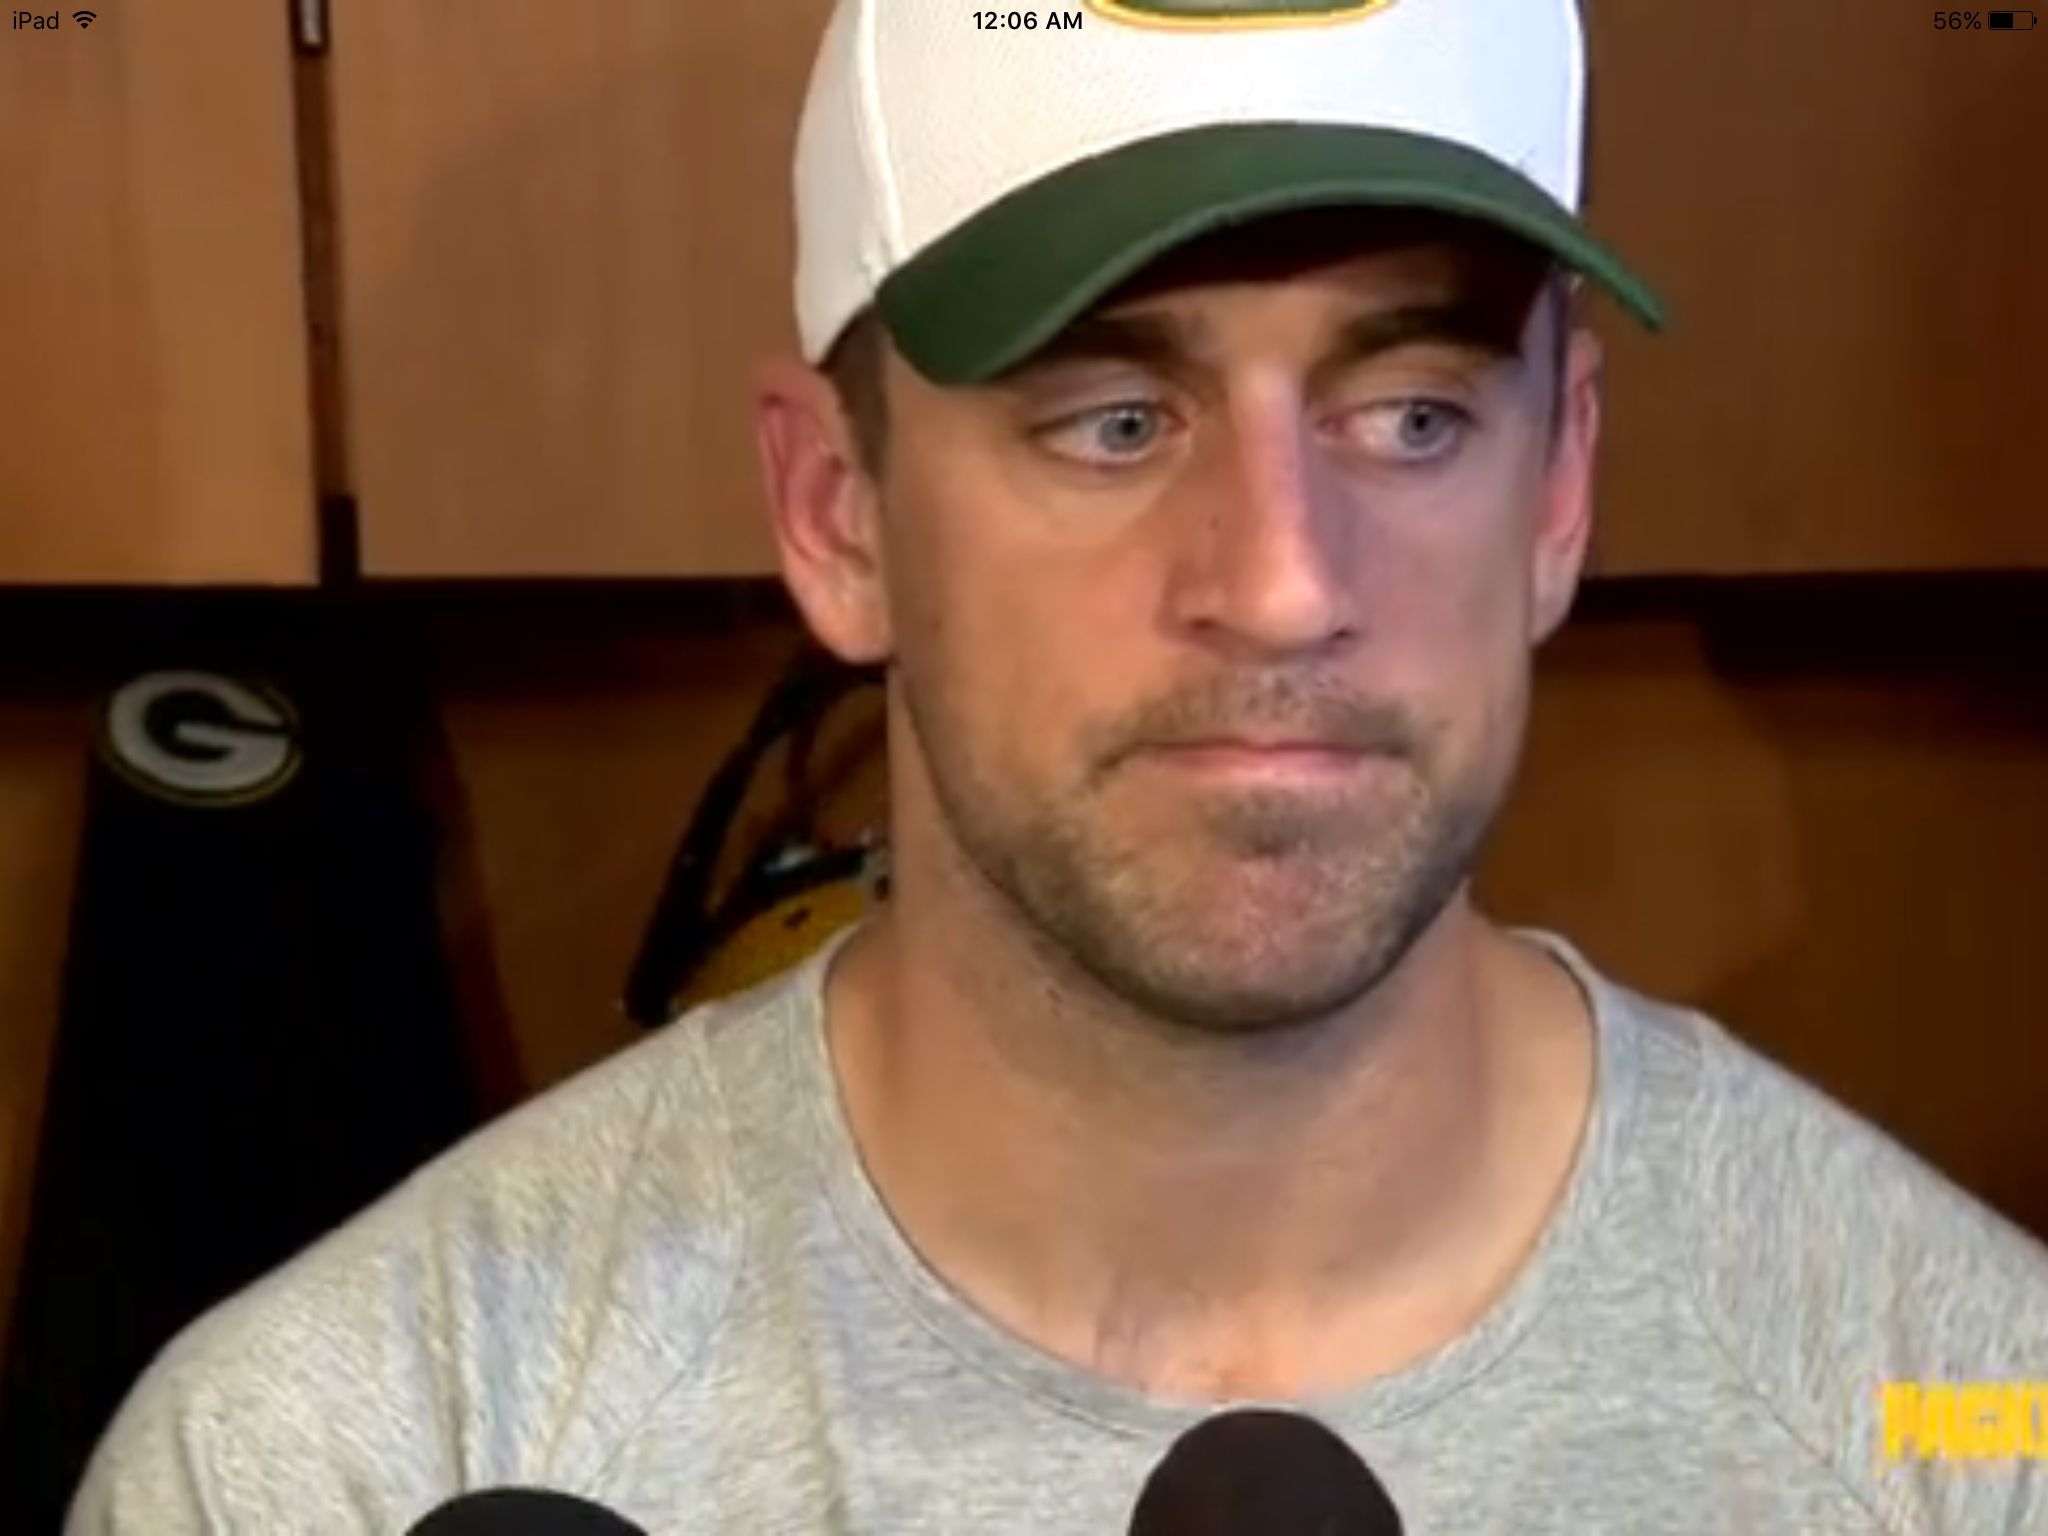 Aaron Rodgers Locker Room Press Conference Athletic Supporter Baseball Hats Aaron Rodgers